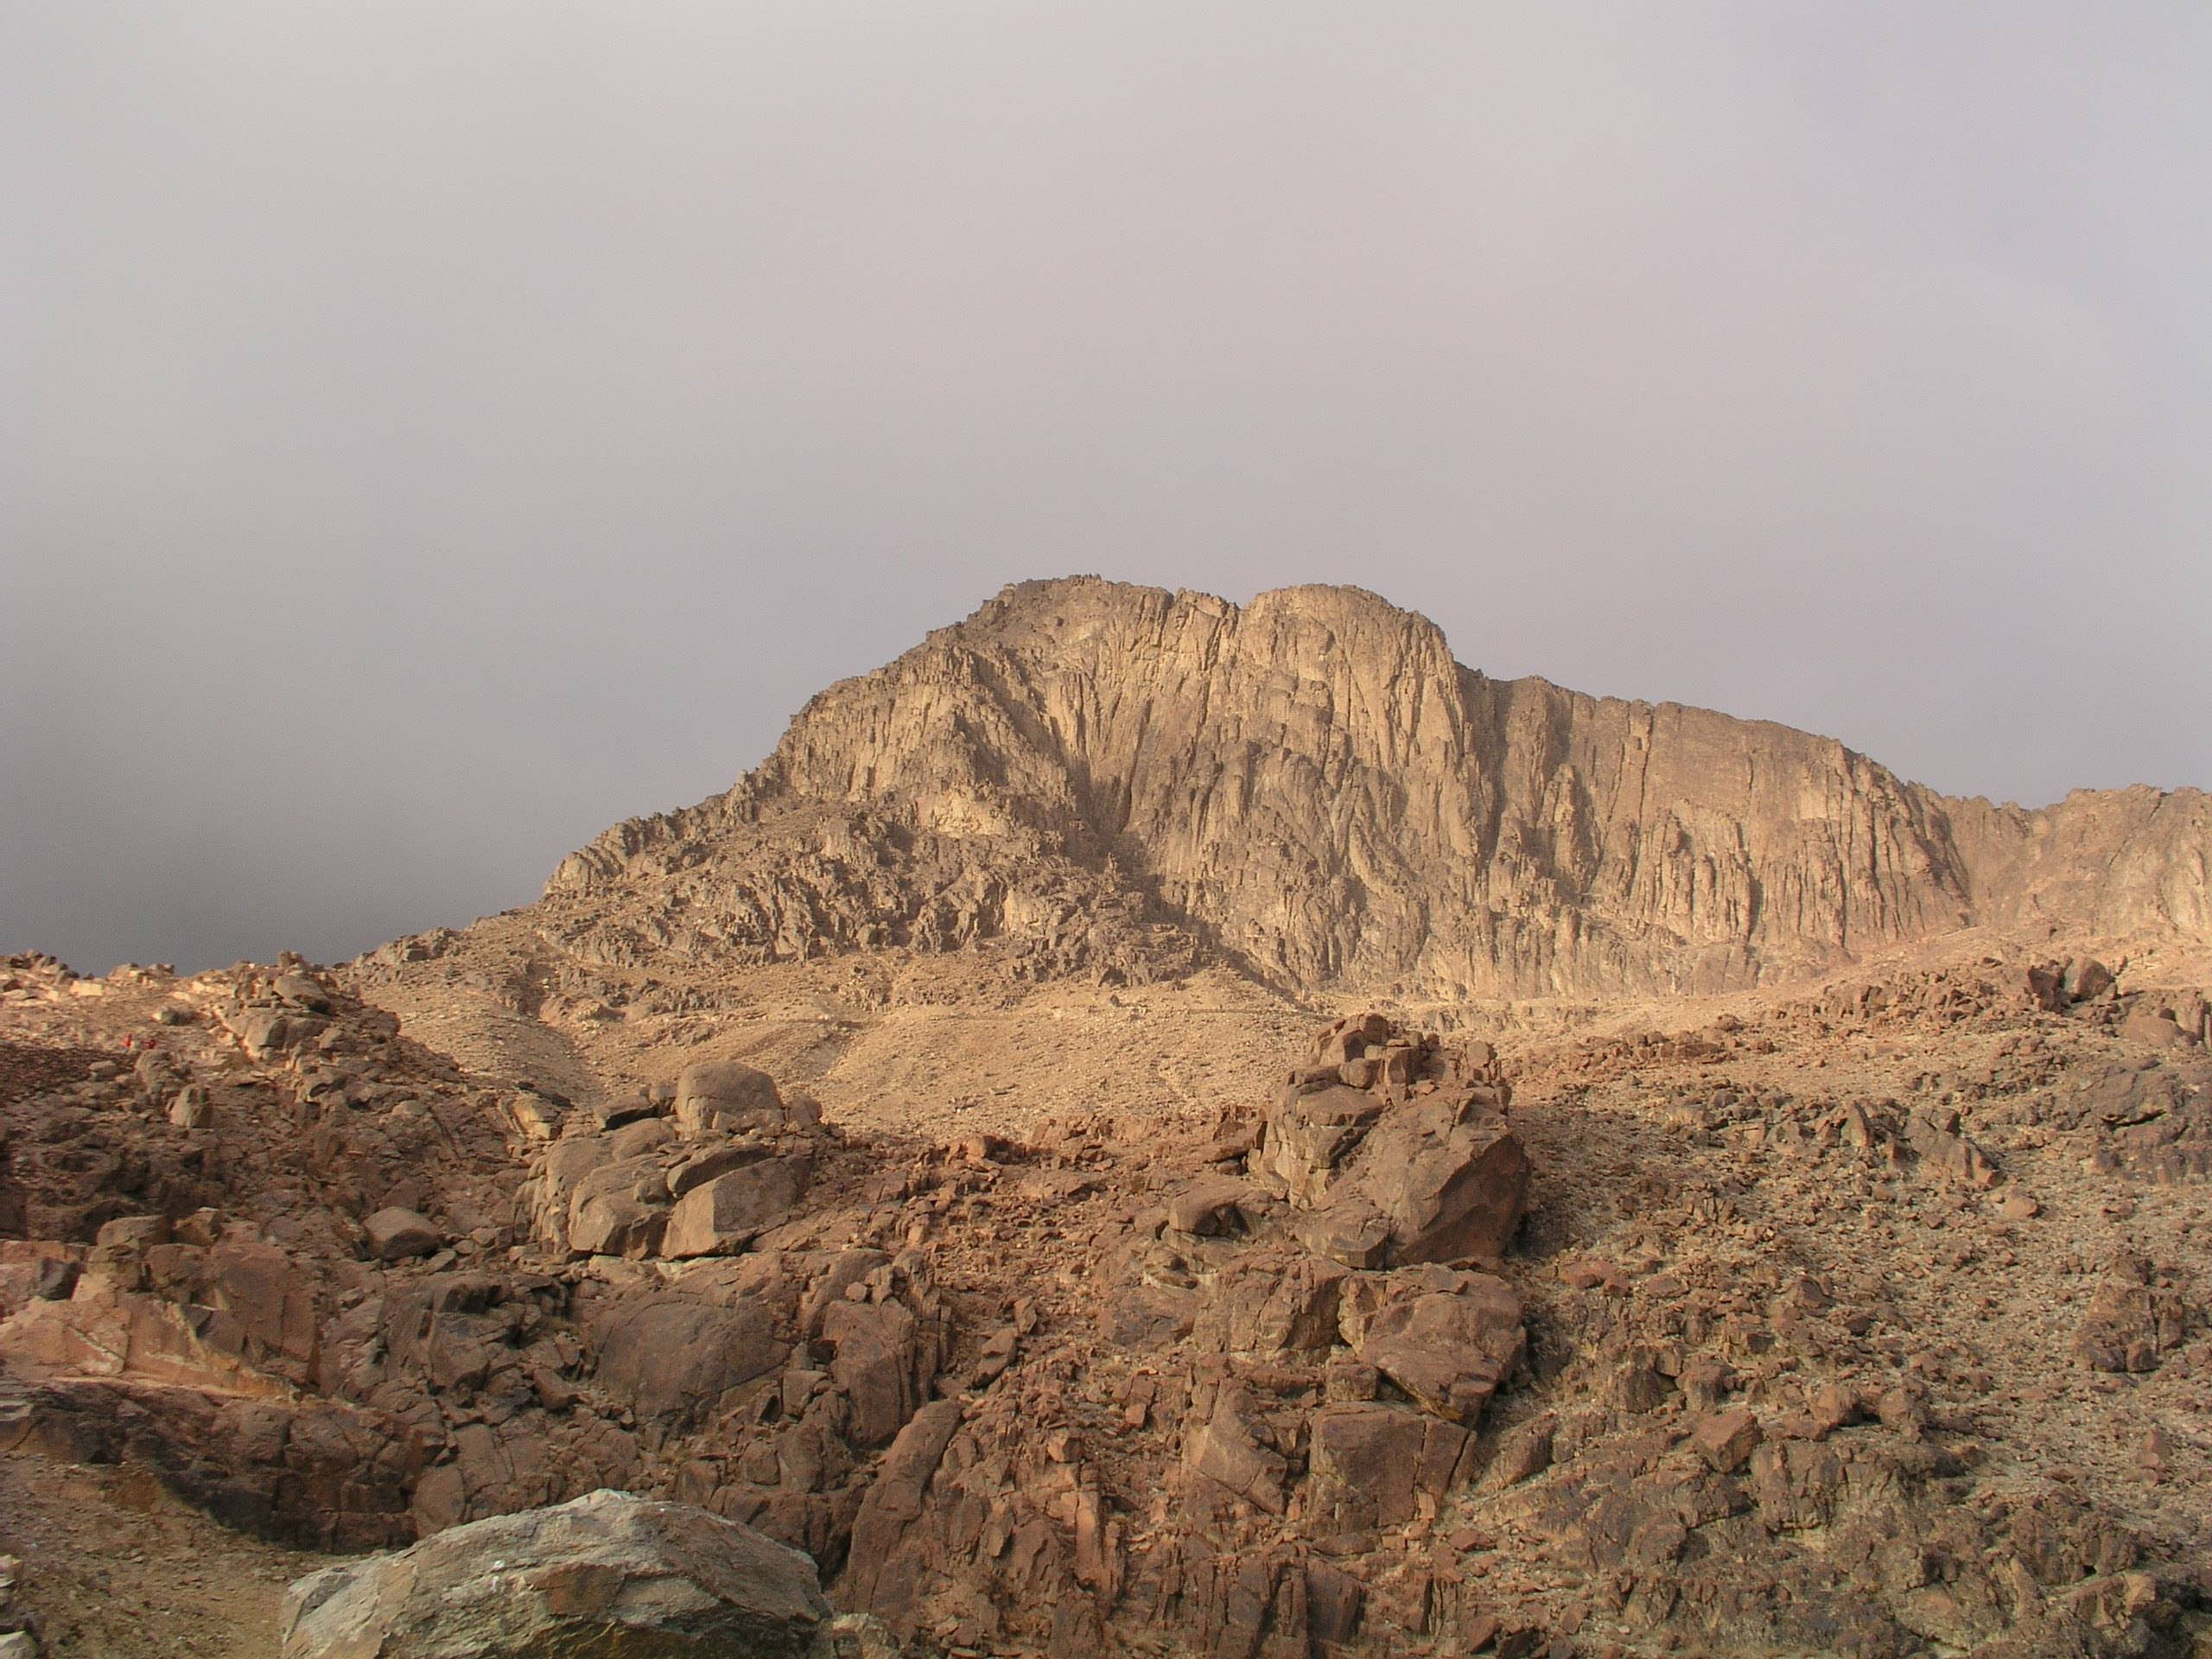 Tourist Sites: Saudi Arabia to Allow Access to Ancient Biblical Sites, Including 'the Real' Mount Sinai